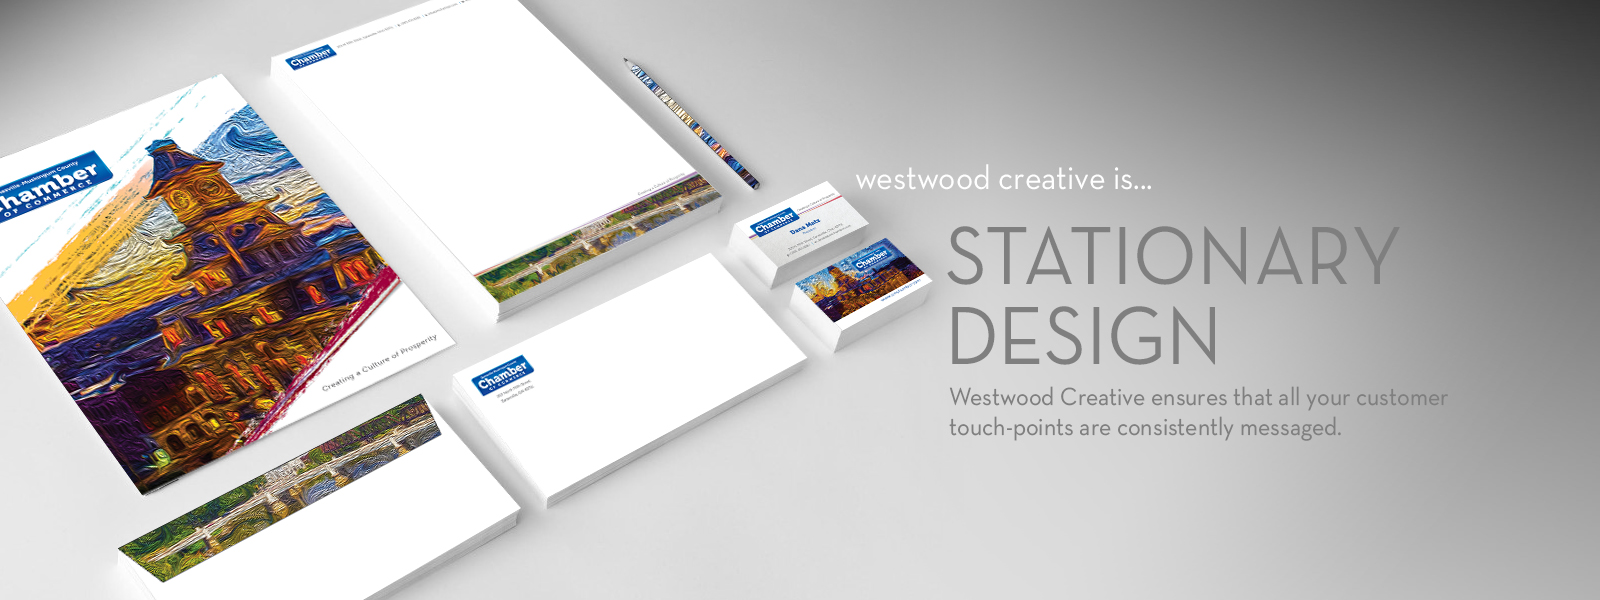 westwood creative Stationary Design